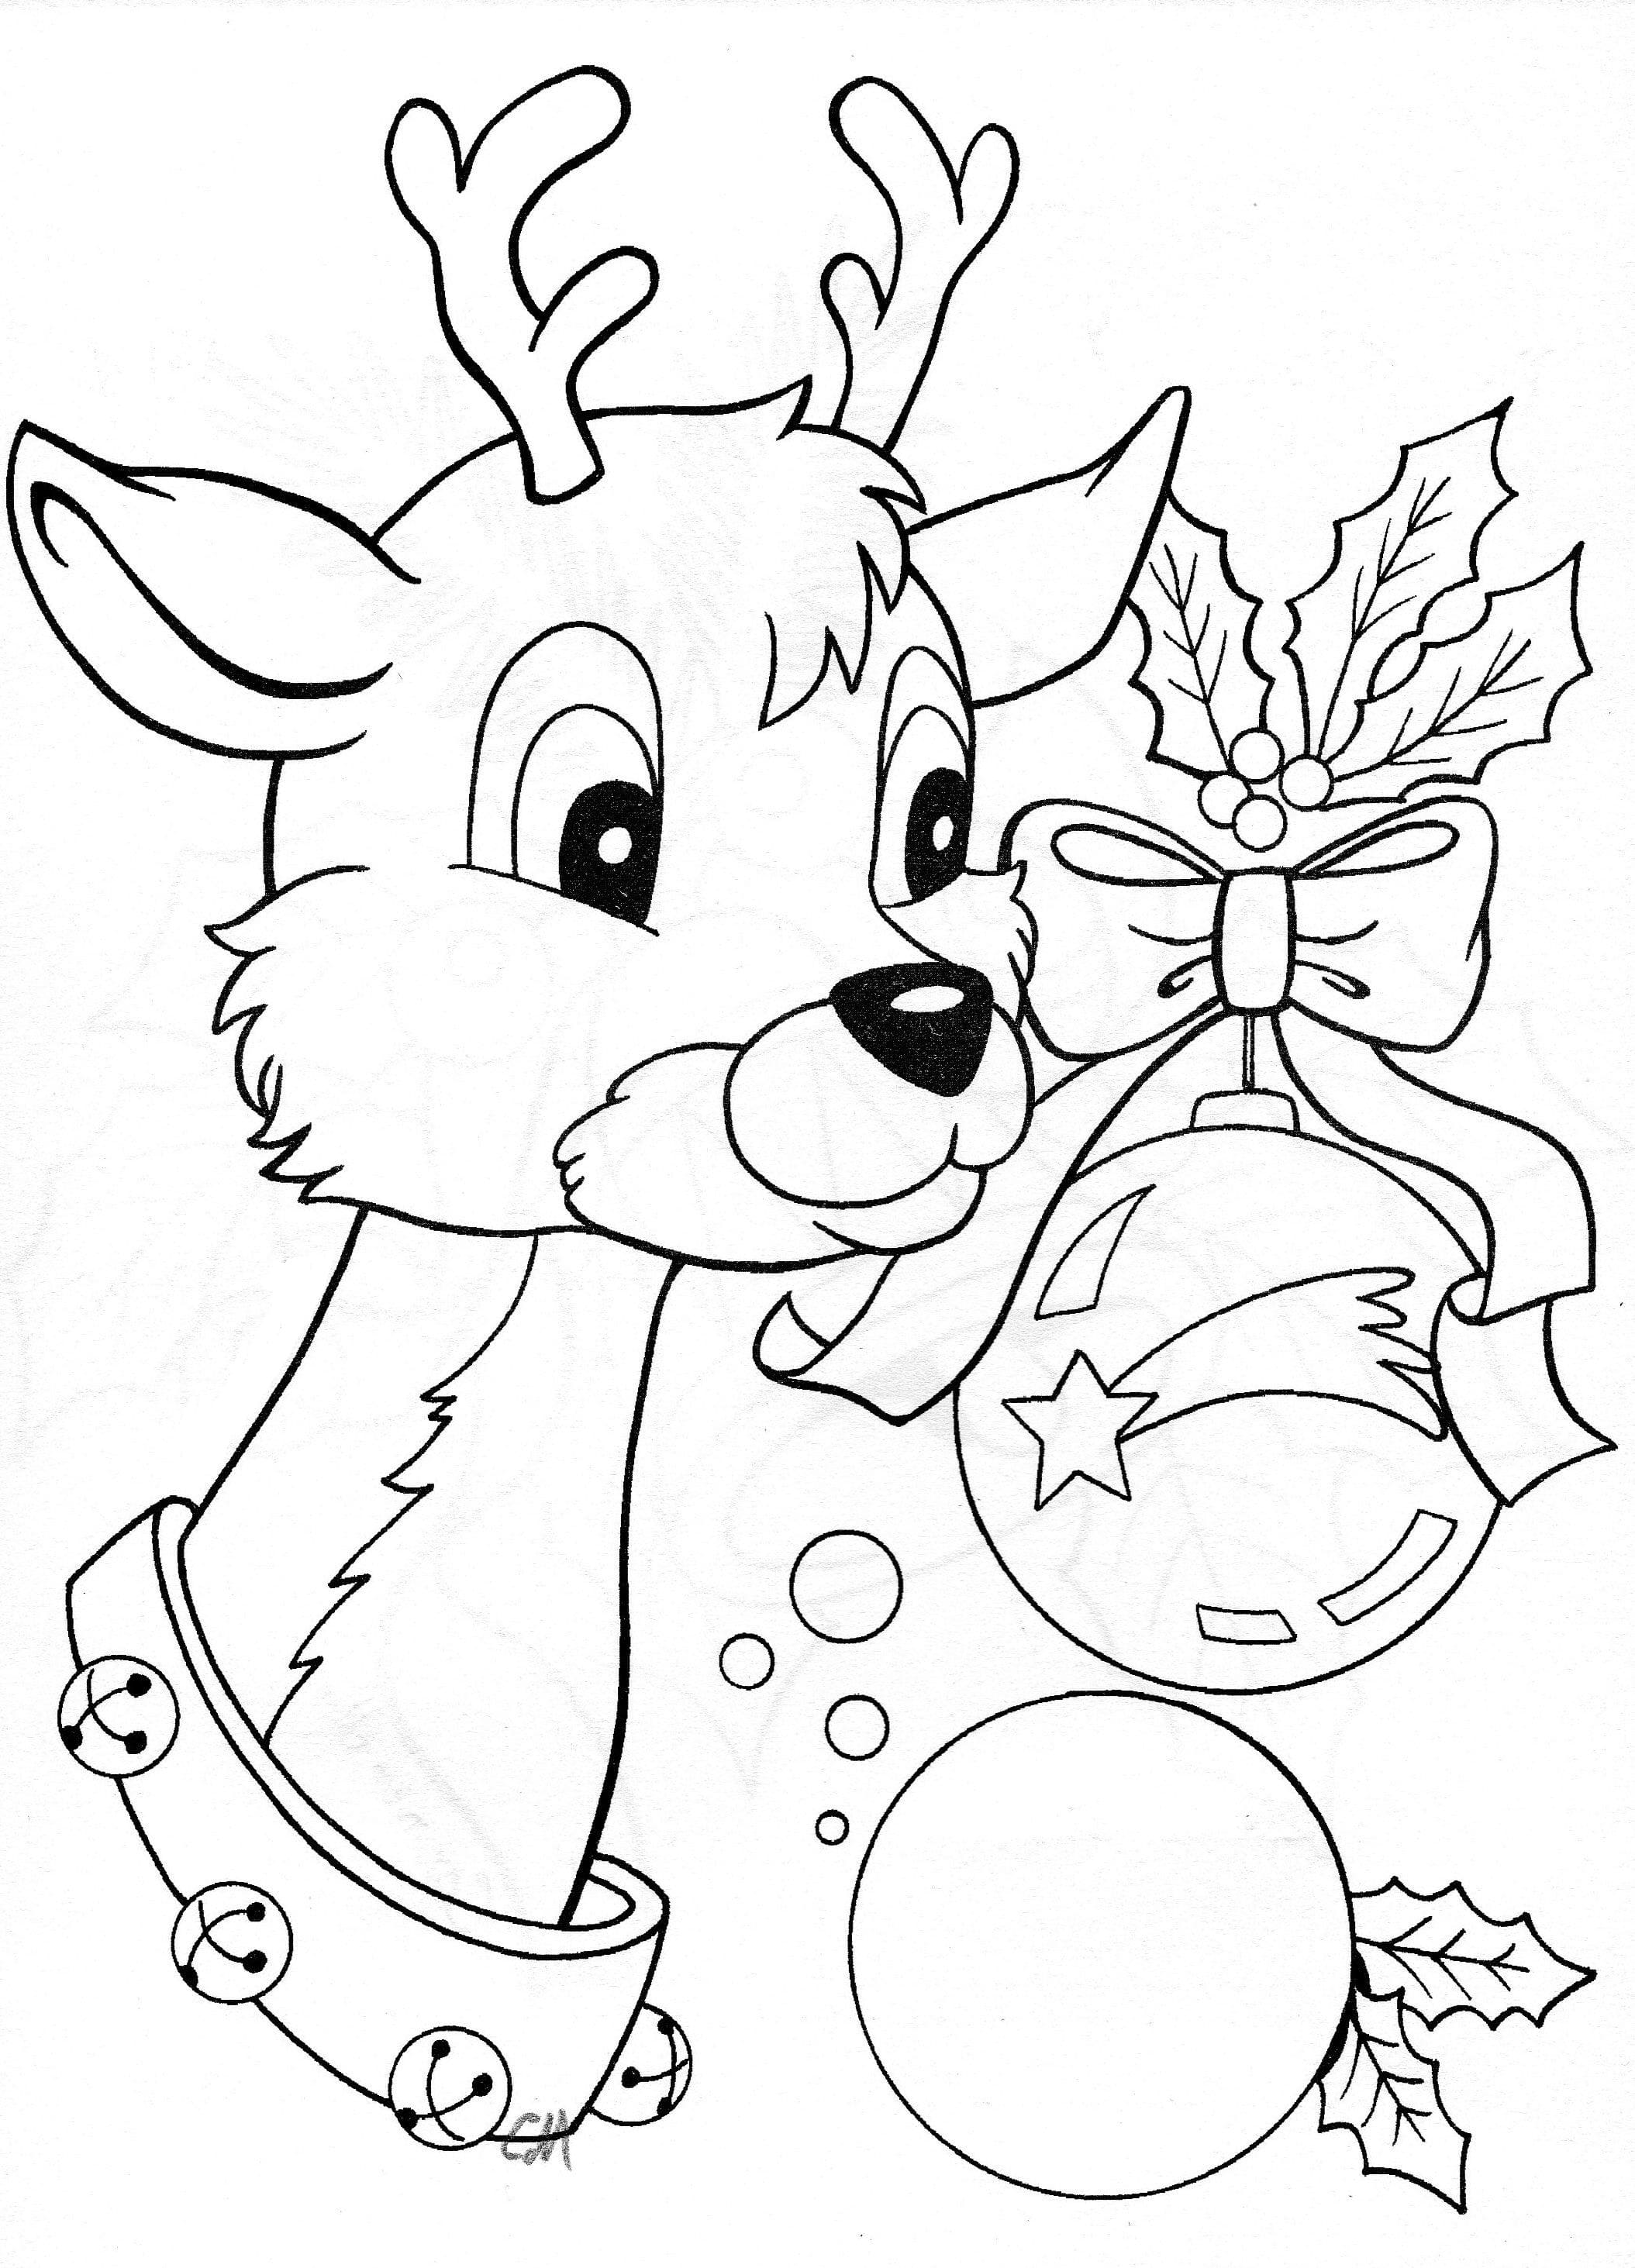 Happy New Year 2020 Coloring Page • FREE Printable PDF from ... | 2926x2109